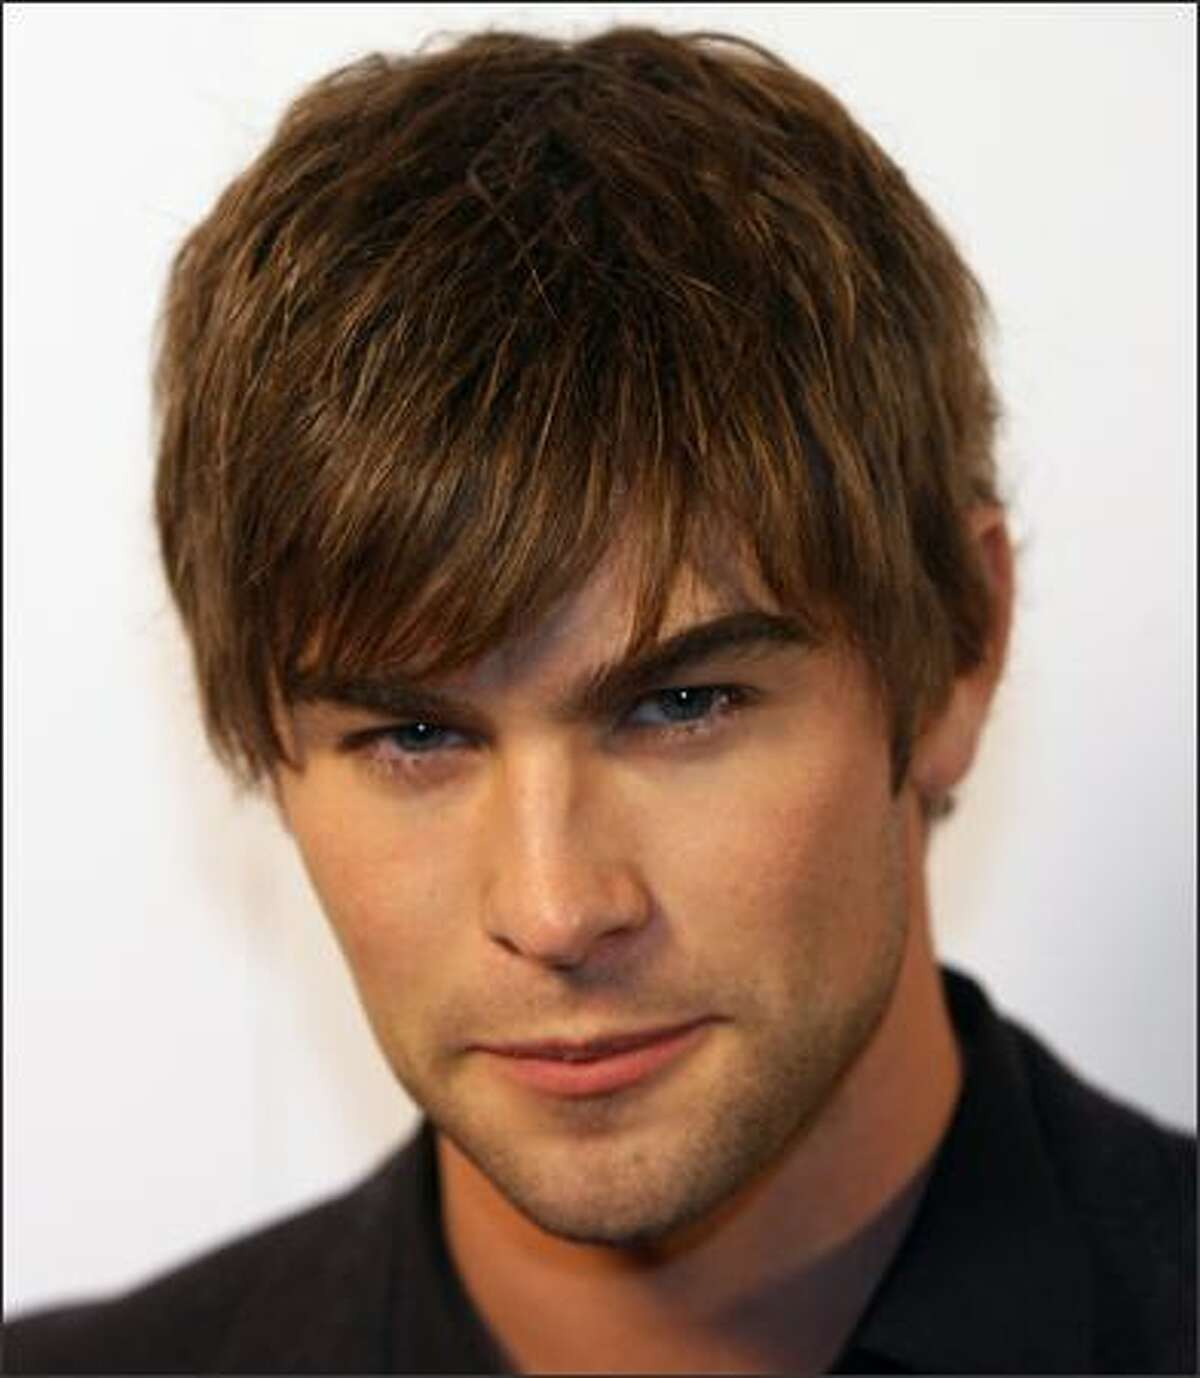 Actor Chace Crawford (